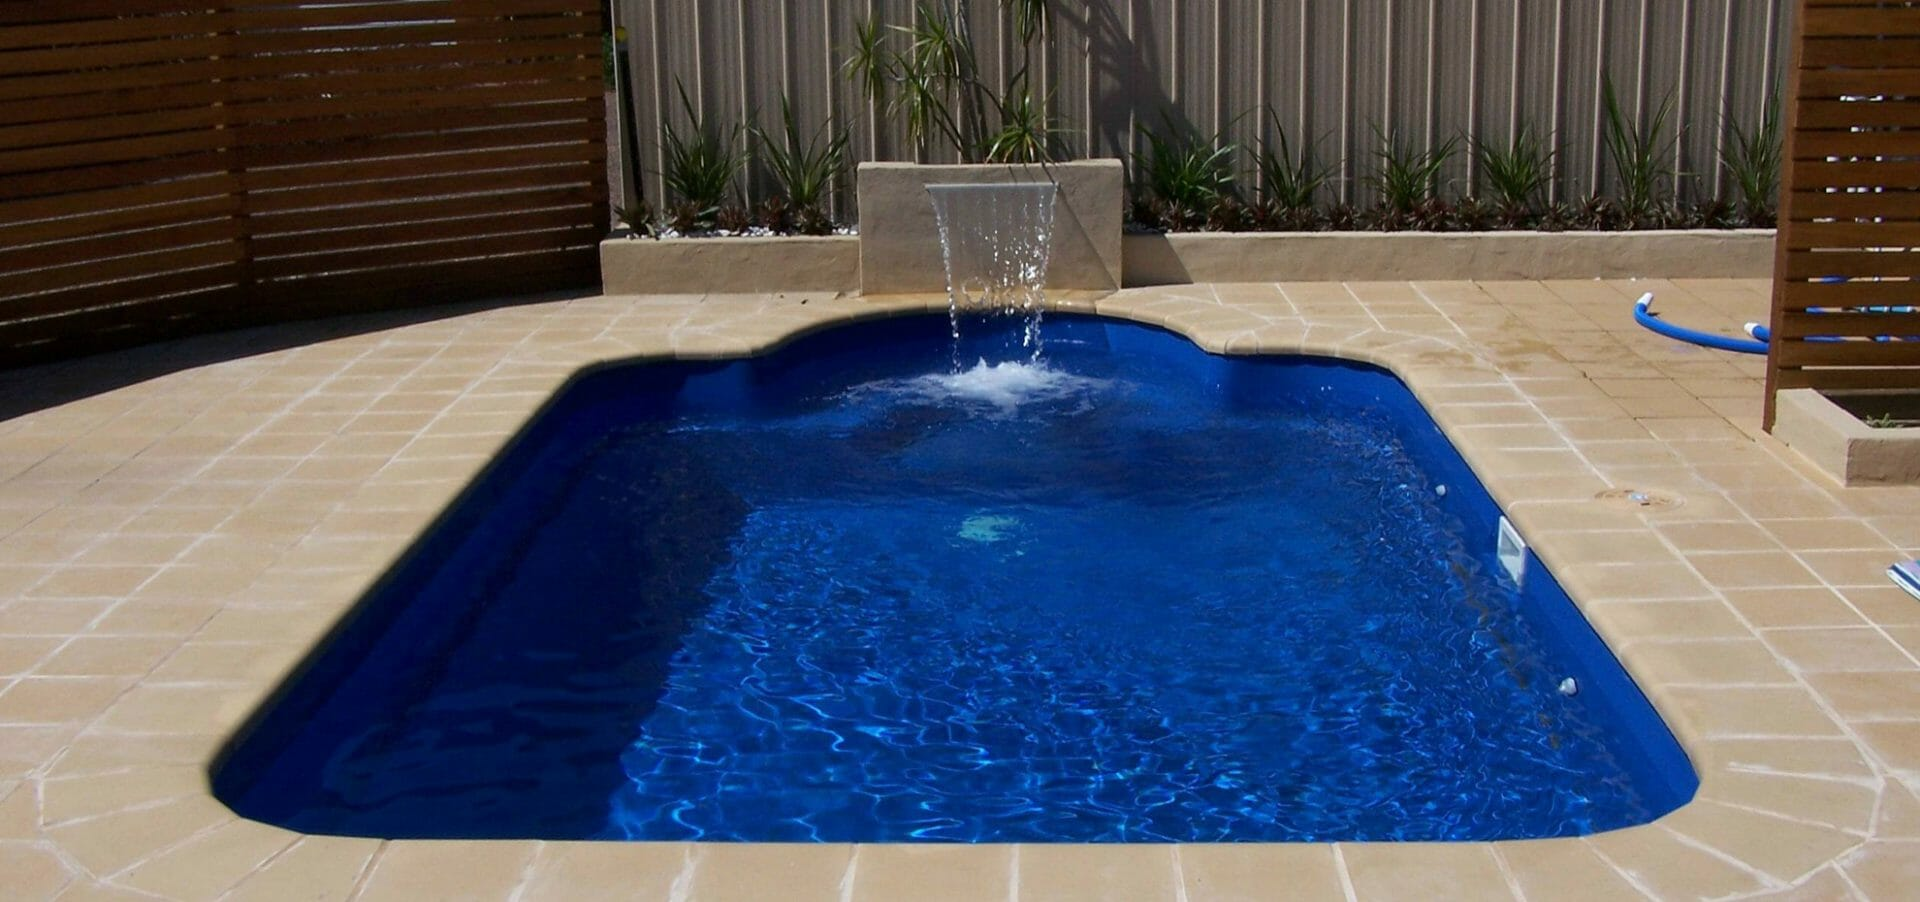 Courtyard Roman fibreglass pool design with water feature and coping by Leisure Pools